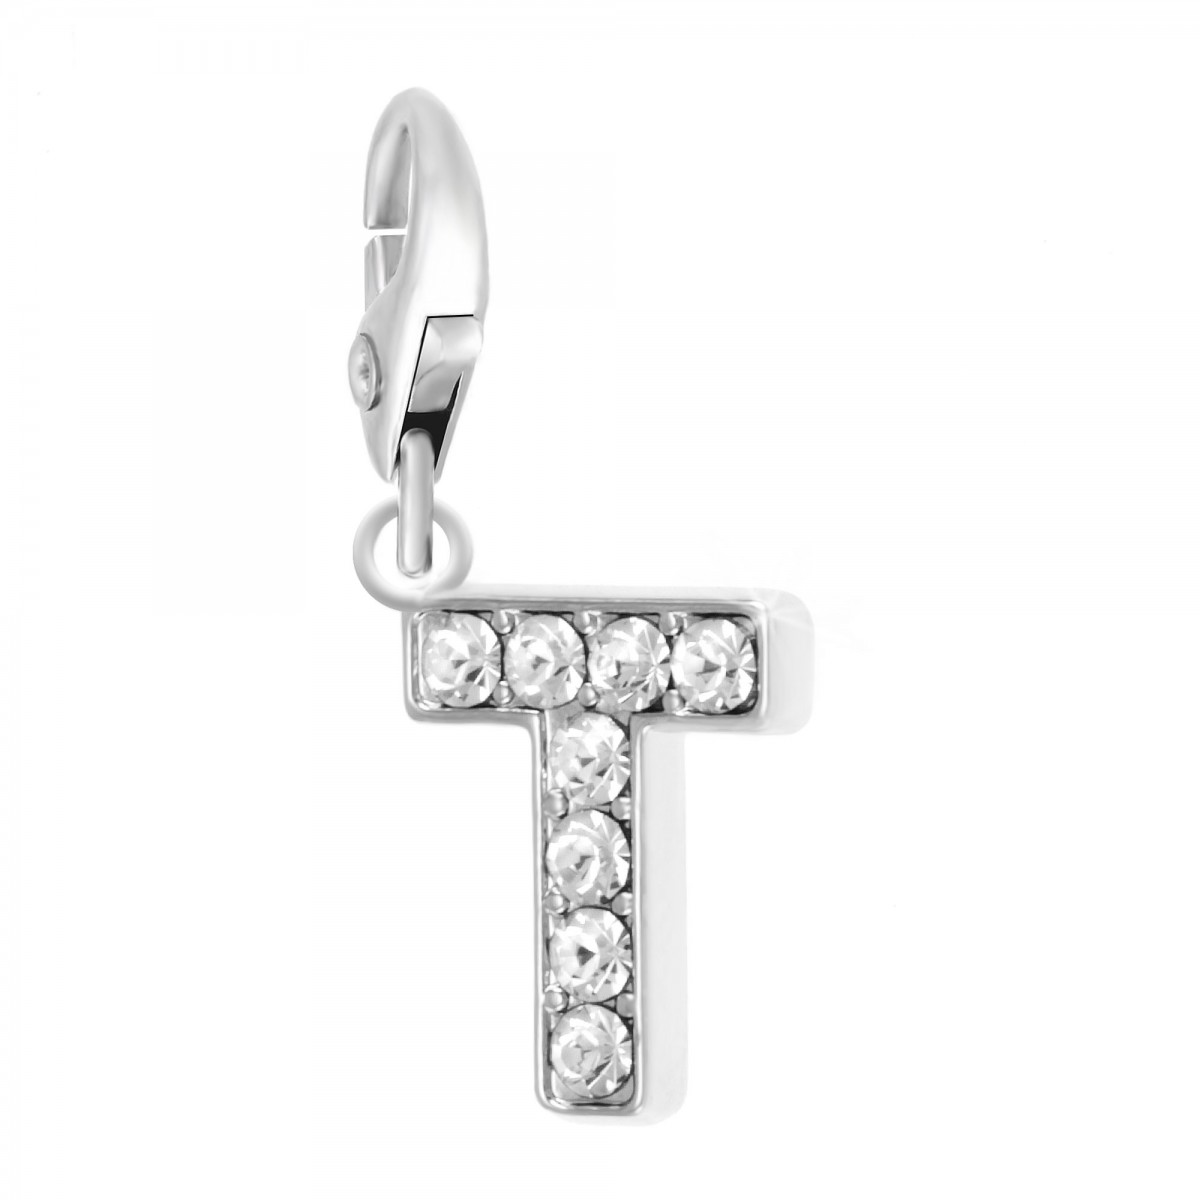 Charm Lettre T So Charm made with Crystal from Swarovski